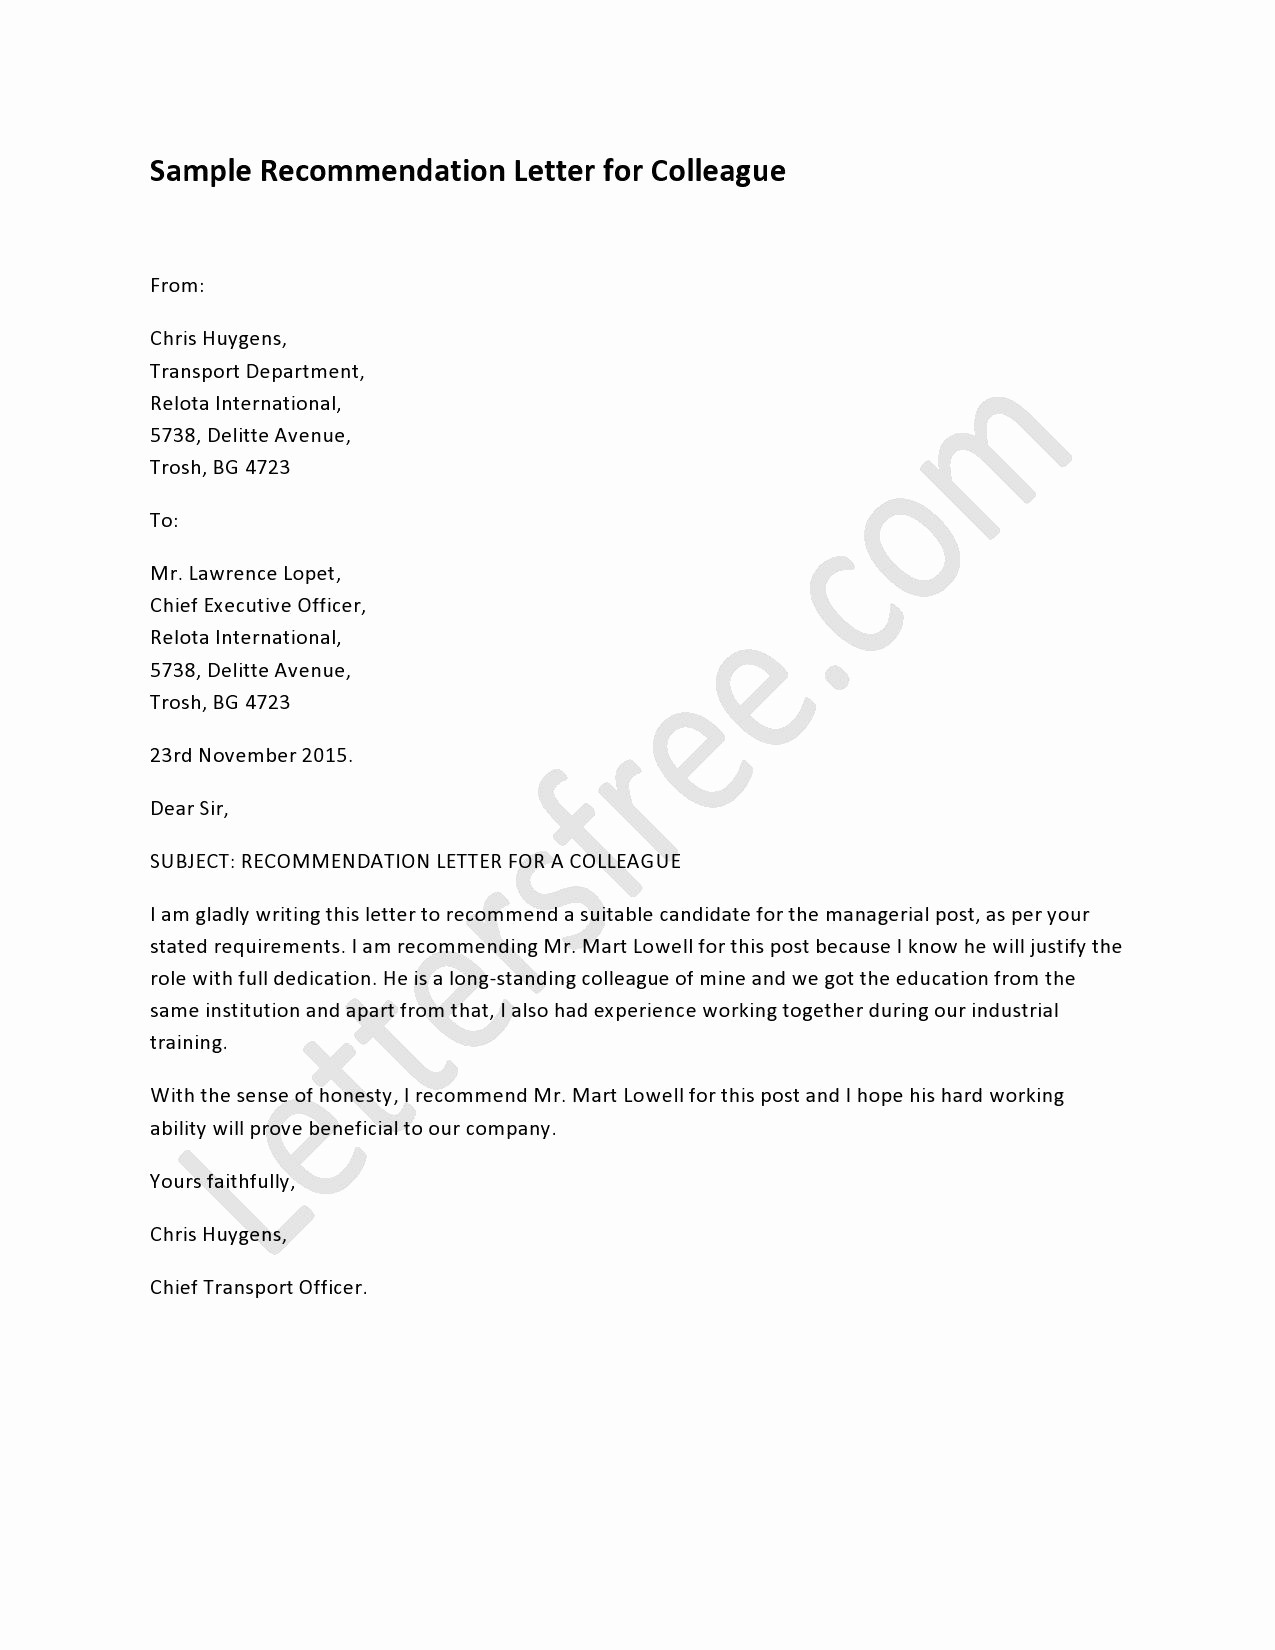 Reference Letter for A Coworker Awesome Re Mendation Letter for Colleague